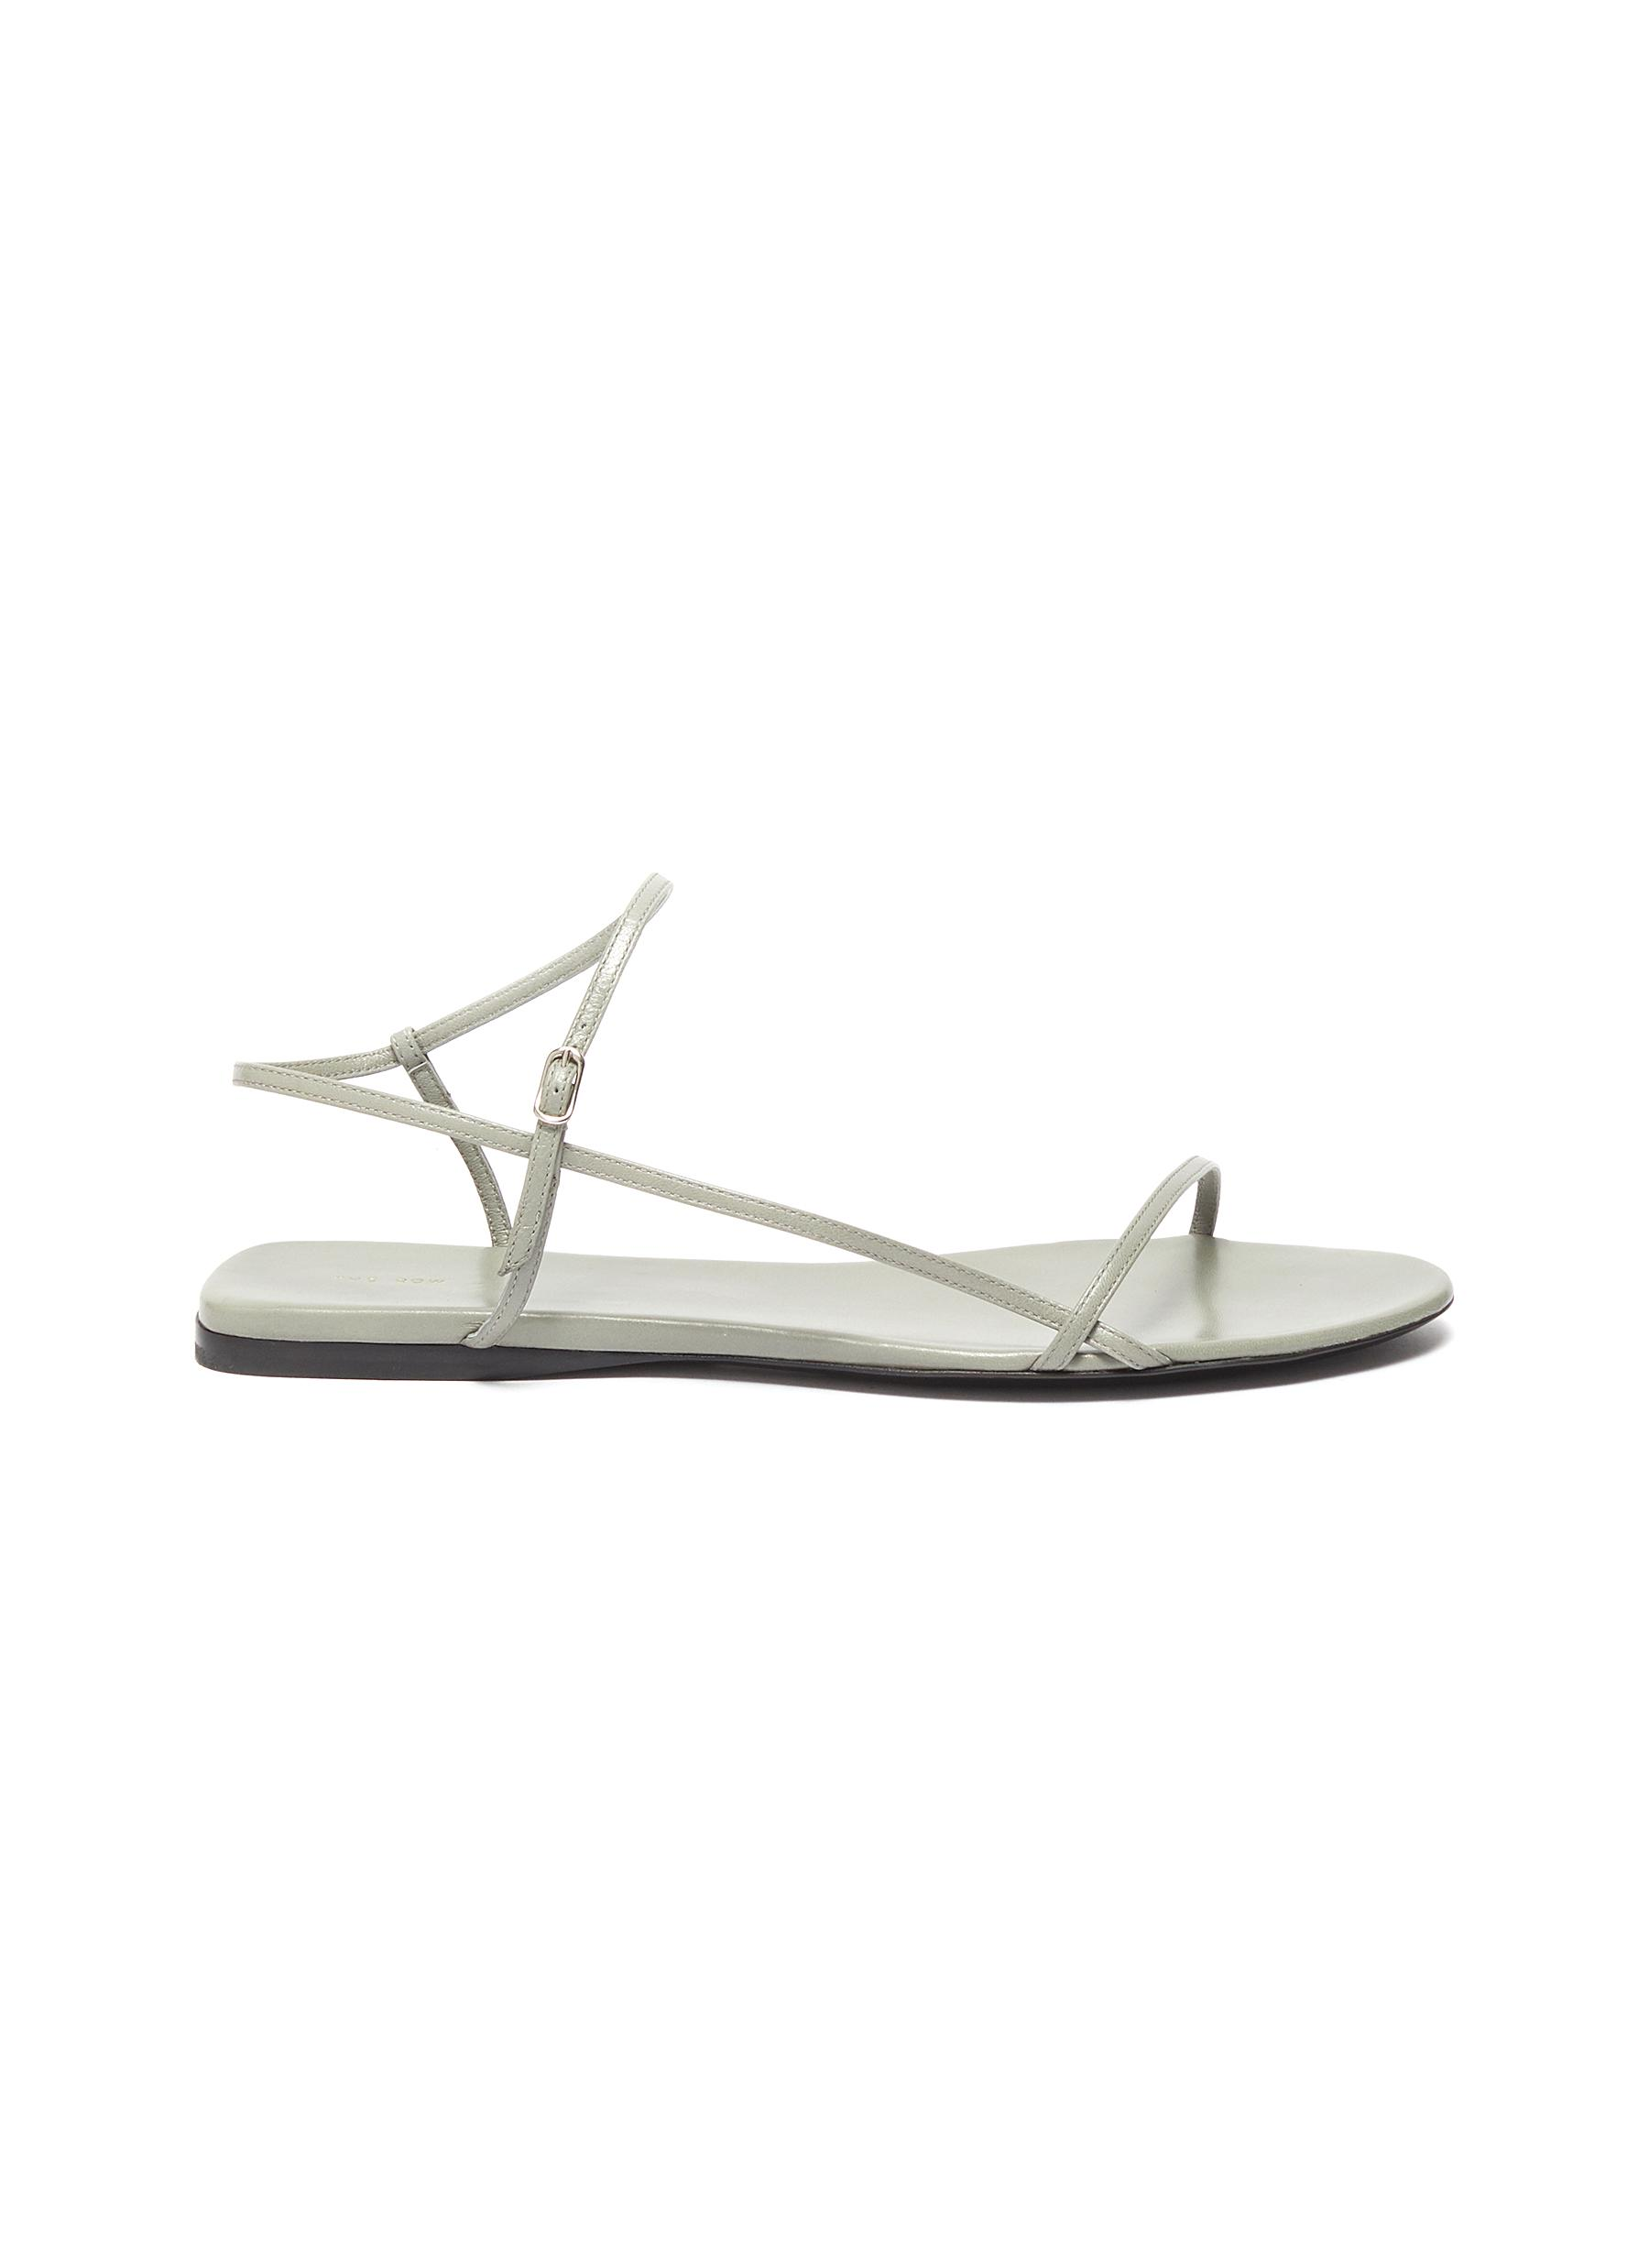 The Row Flats Bare strappy leather sandals